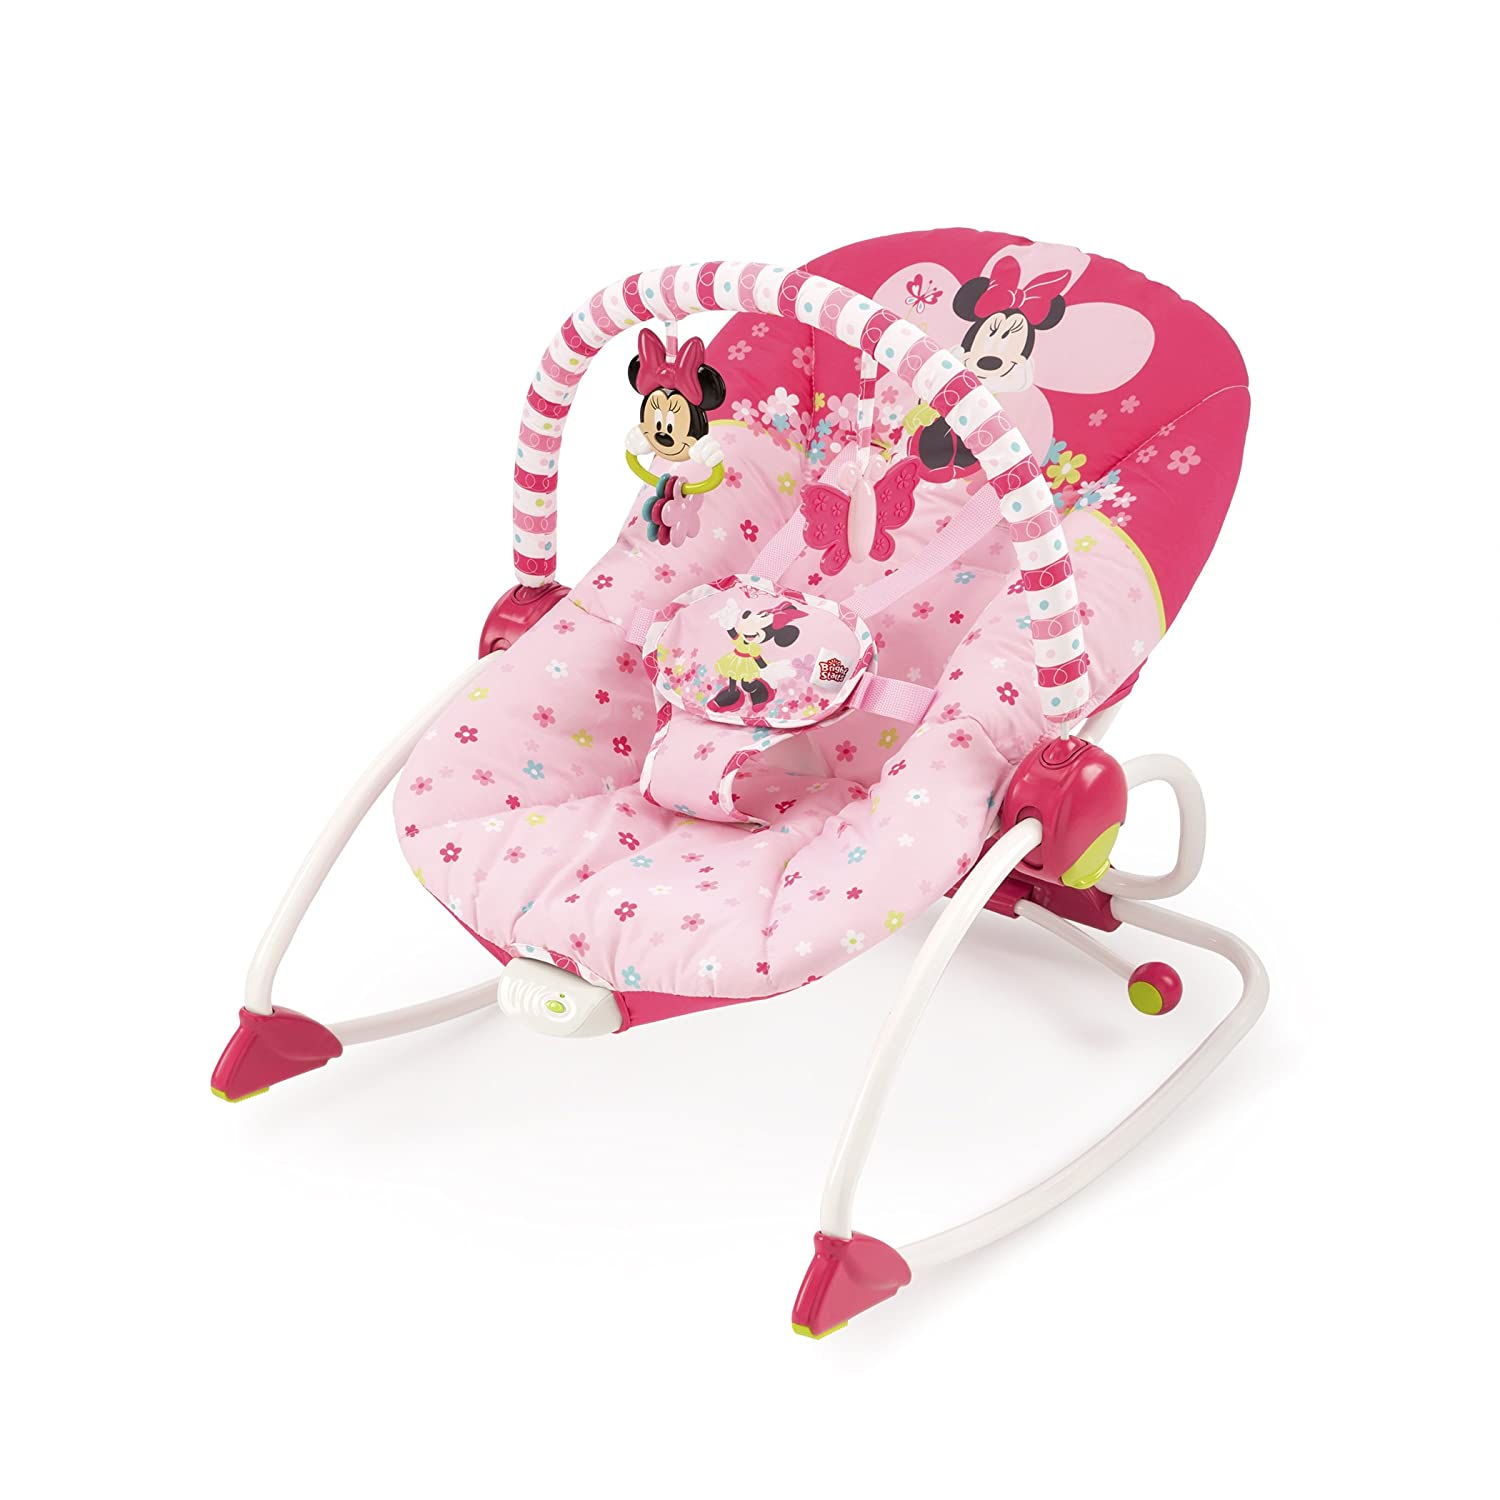 Disney Minnie Mouse Bows & Butterflies Baby To Big Kid Rocking Seat